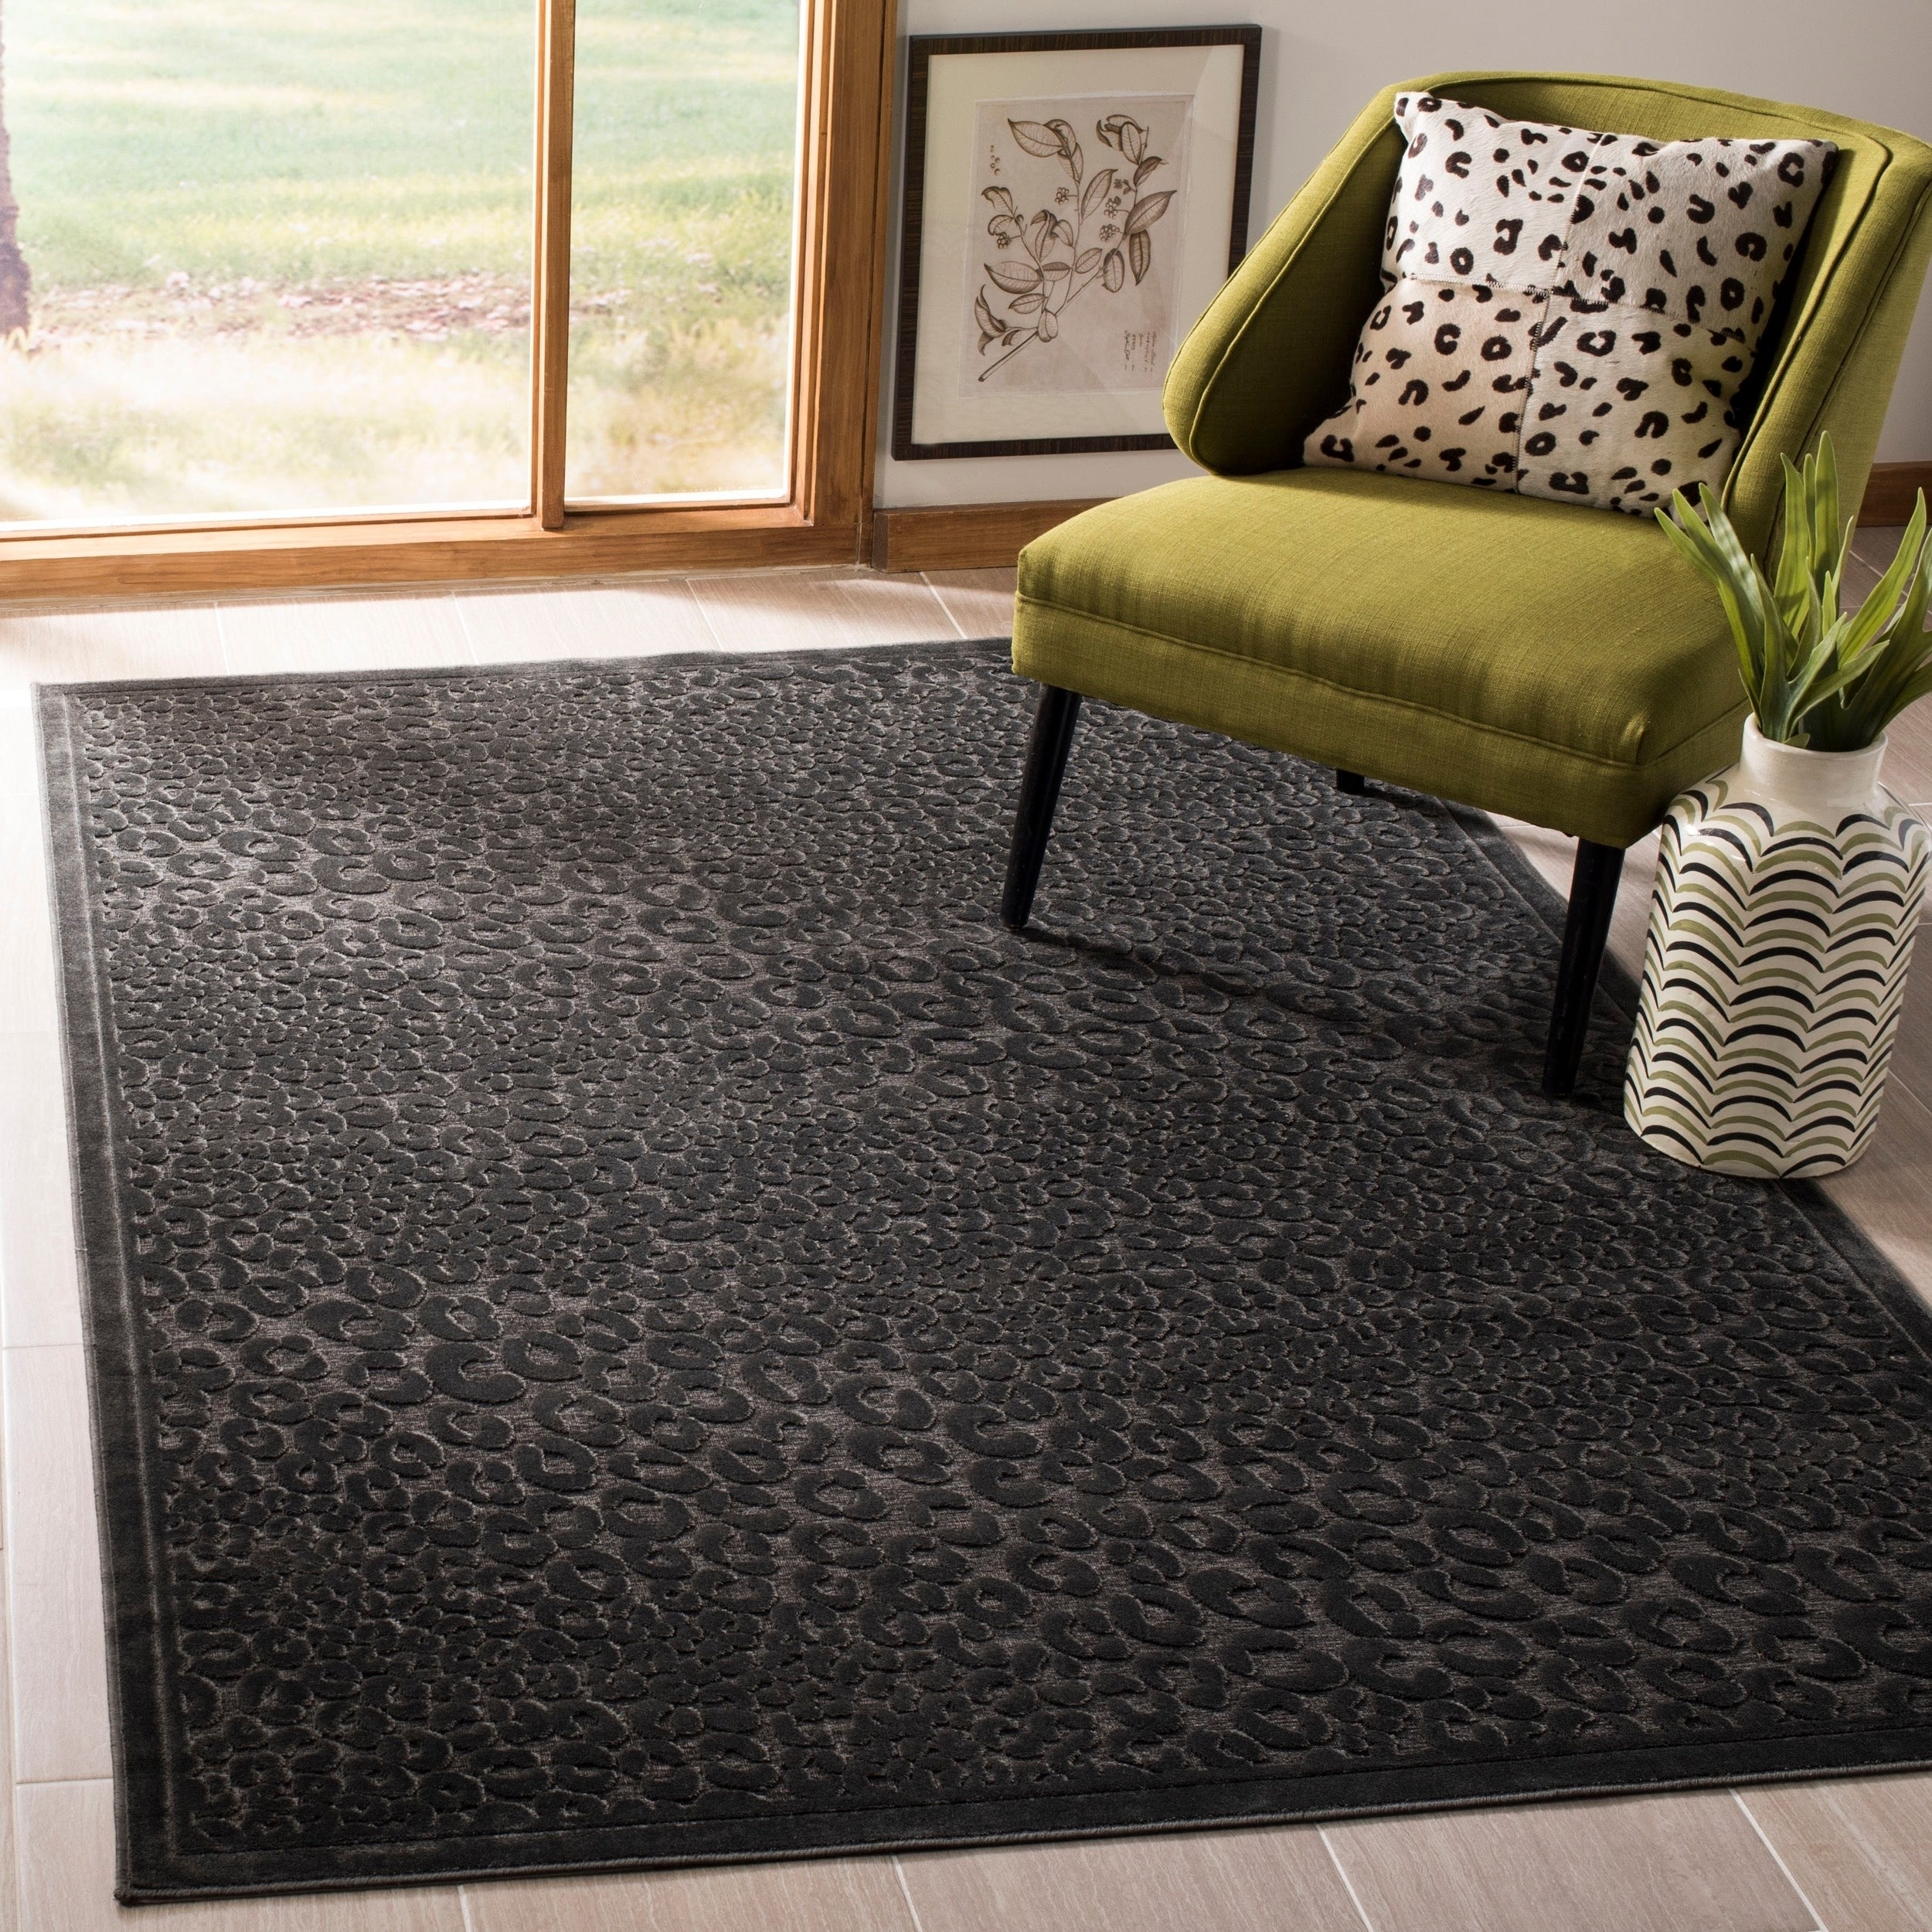 Safavieh Paradise Charcoal Grey Viscose Rug (5' 3 x 7' 6)...